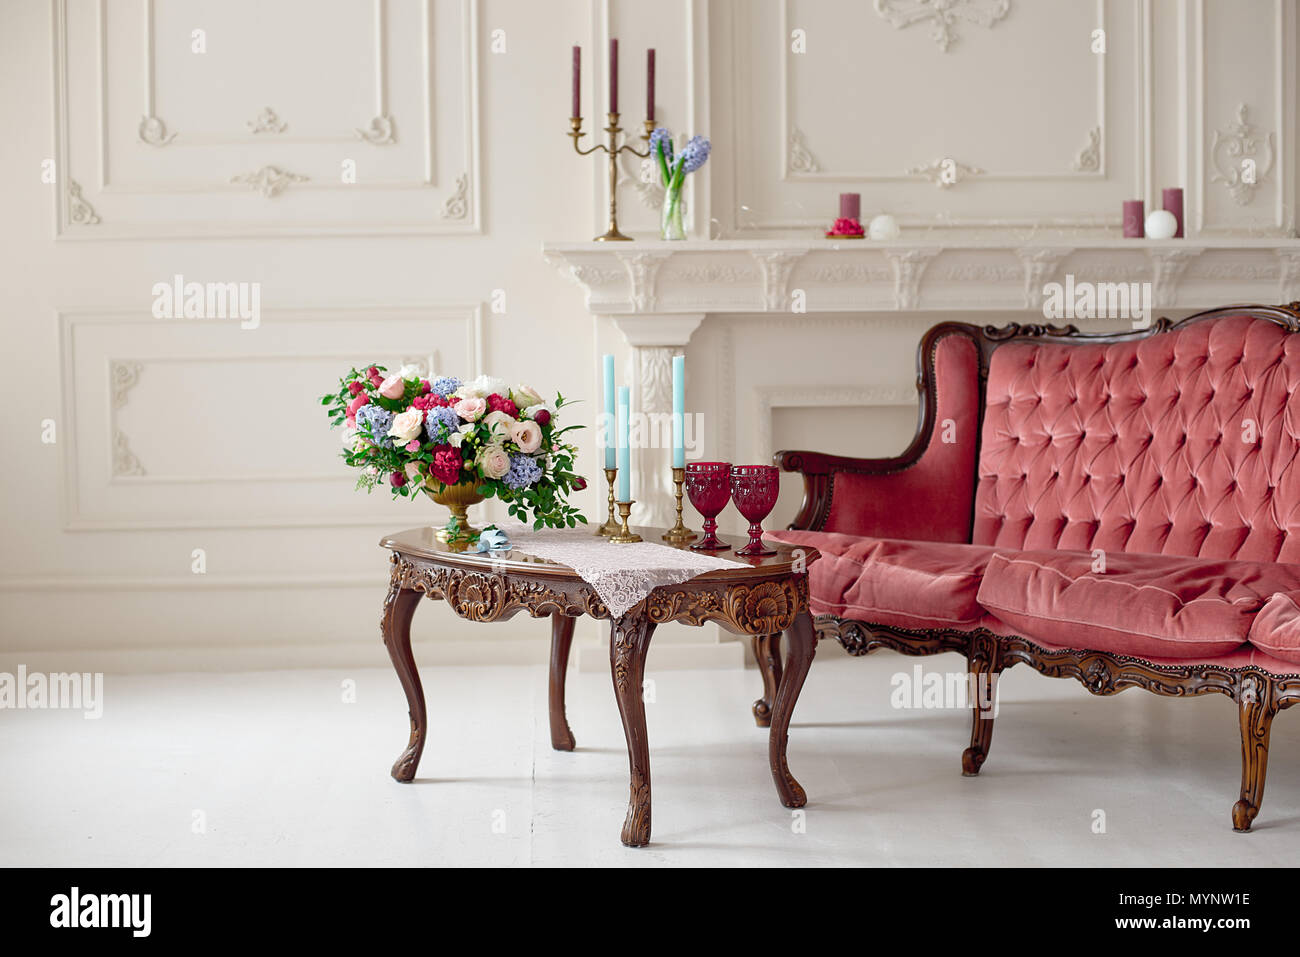 Outstanding Baroque Style Interior With Red Luxury Sofa And Table In The Gmtry Best Dining Table And Chair Ideas Images Gmtryco